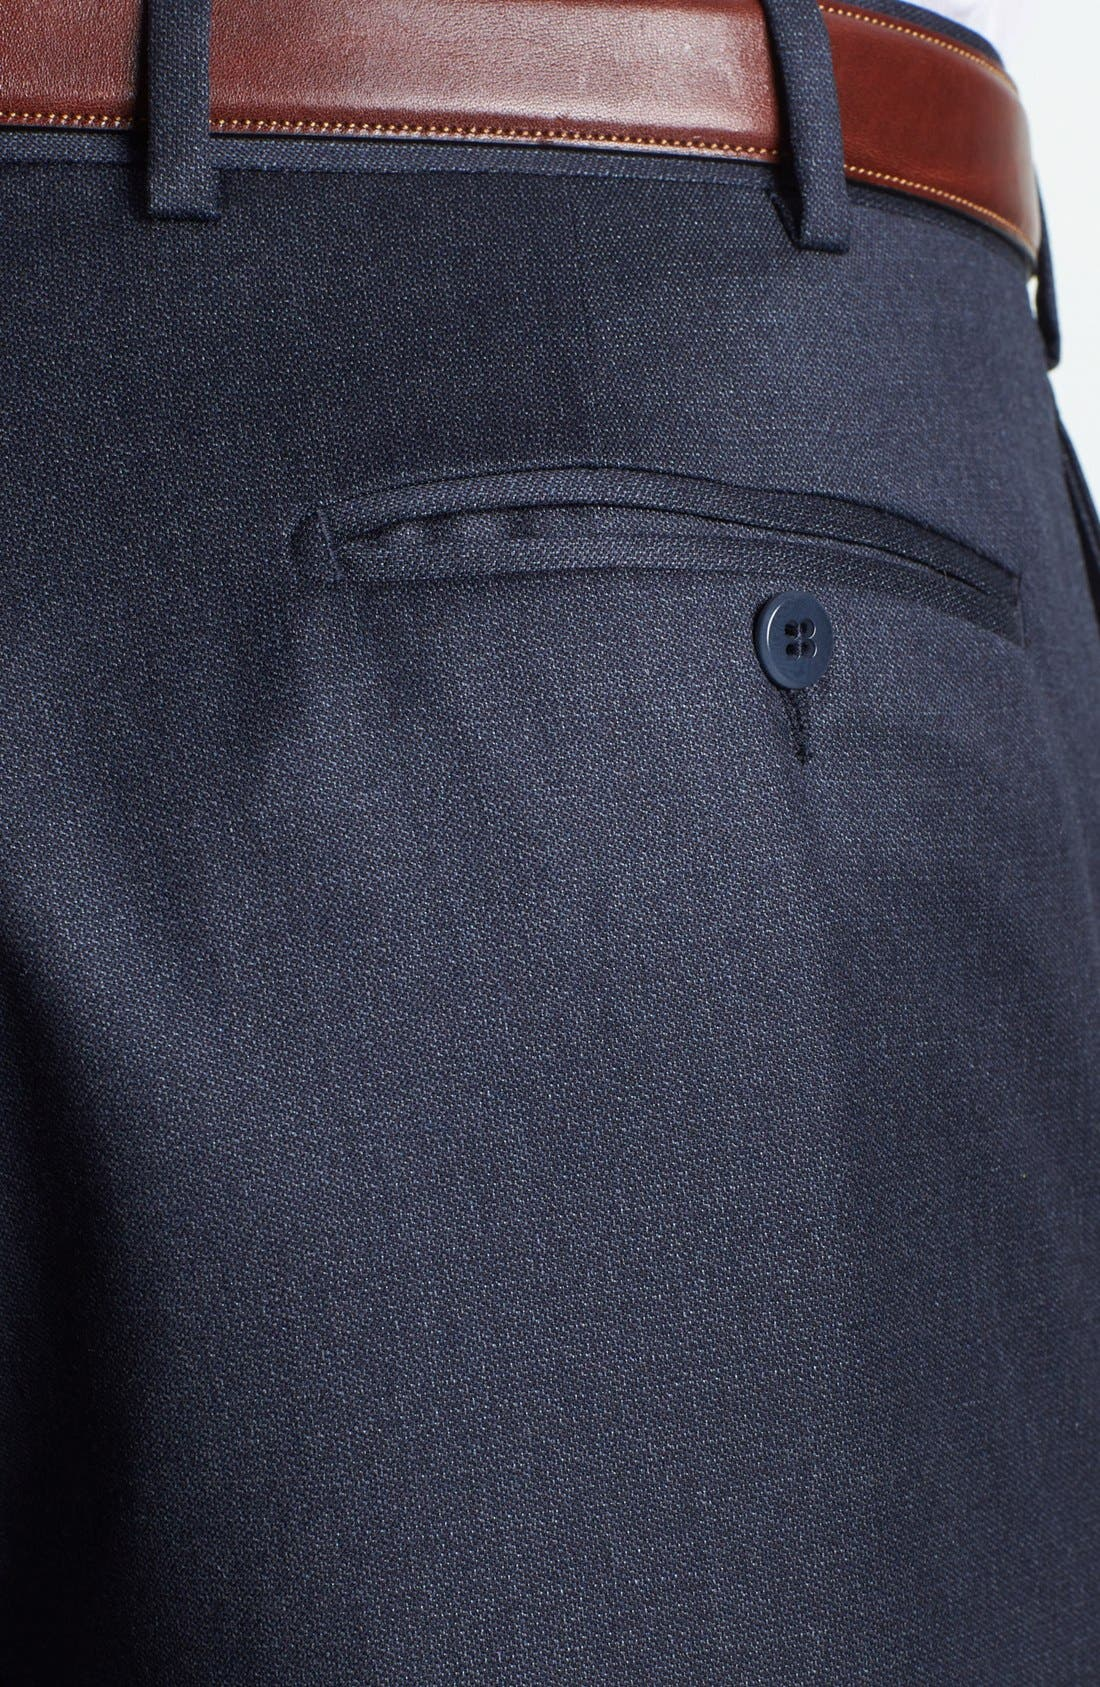 Alternate Image 3  - Zanella 'Devon' Flat Front Trousers